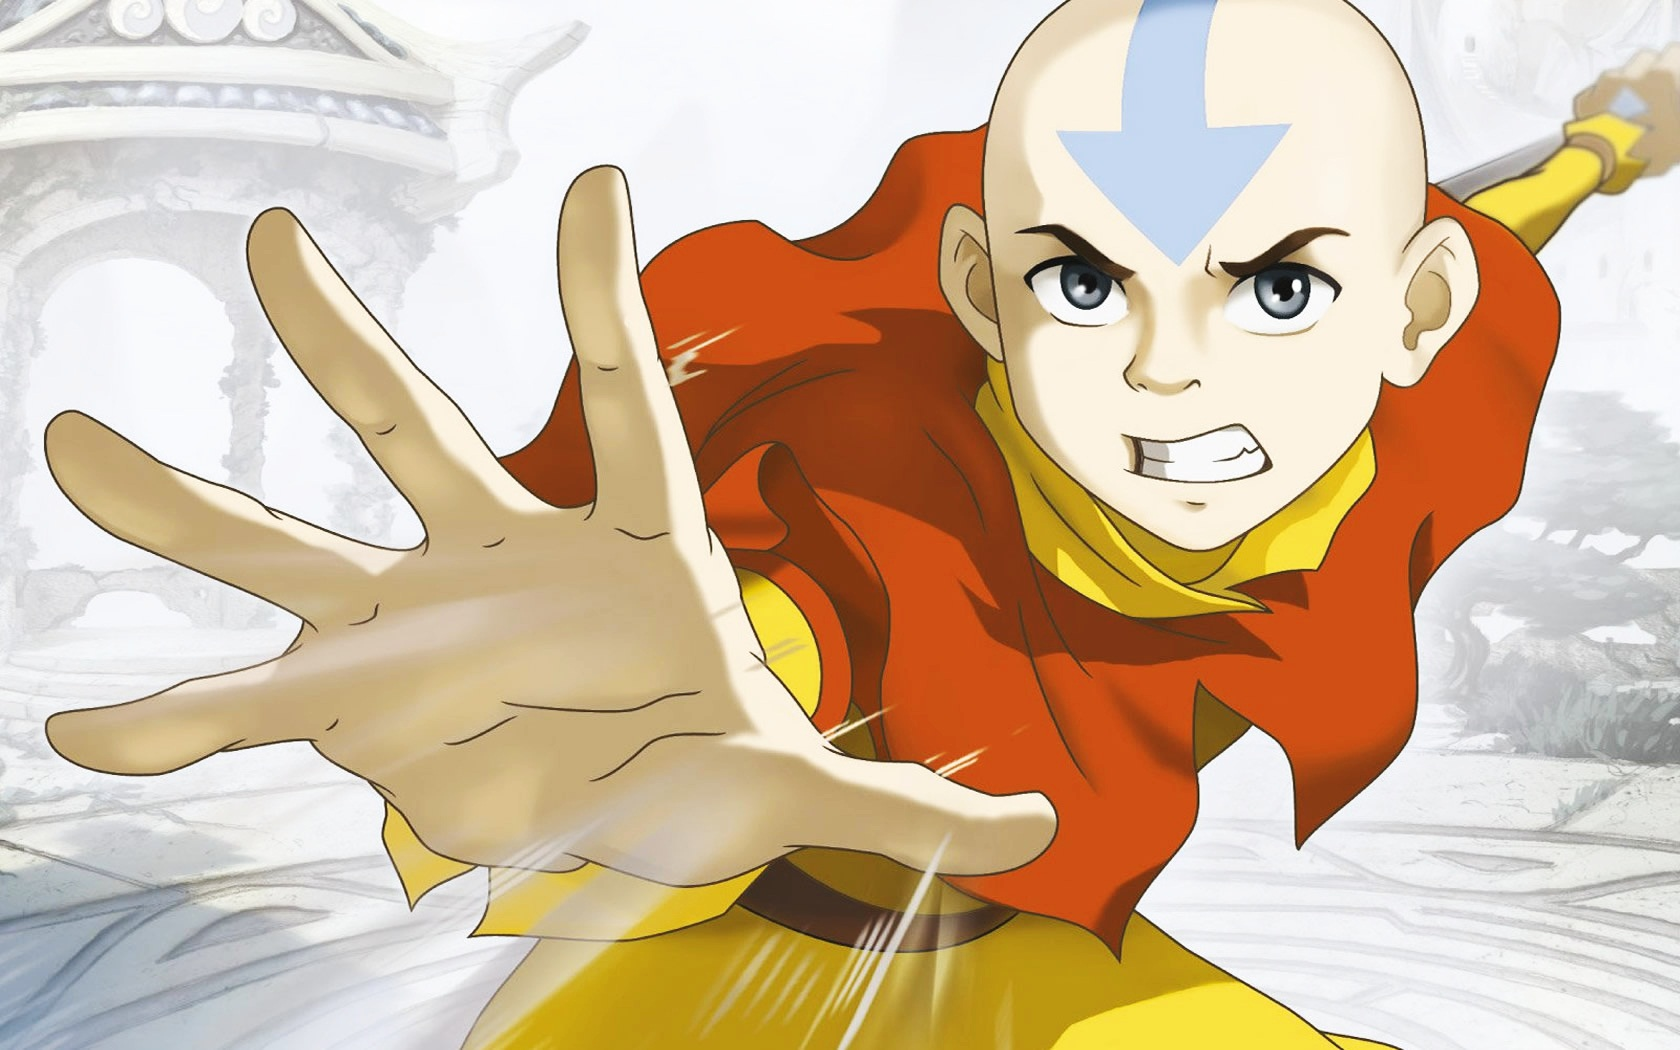 Avatar The Last Airbender Wallpapers HD Wallpapers 1680x1050